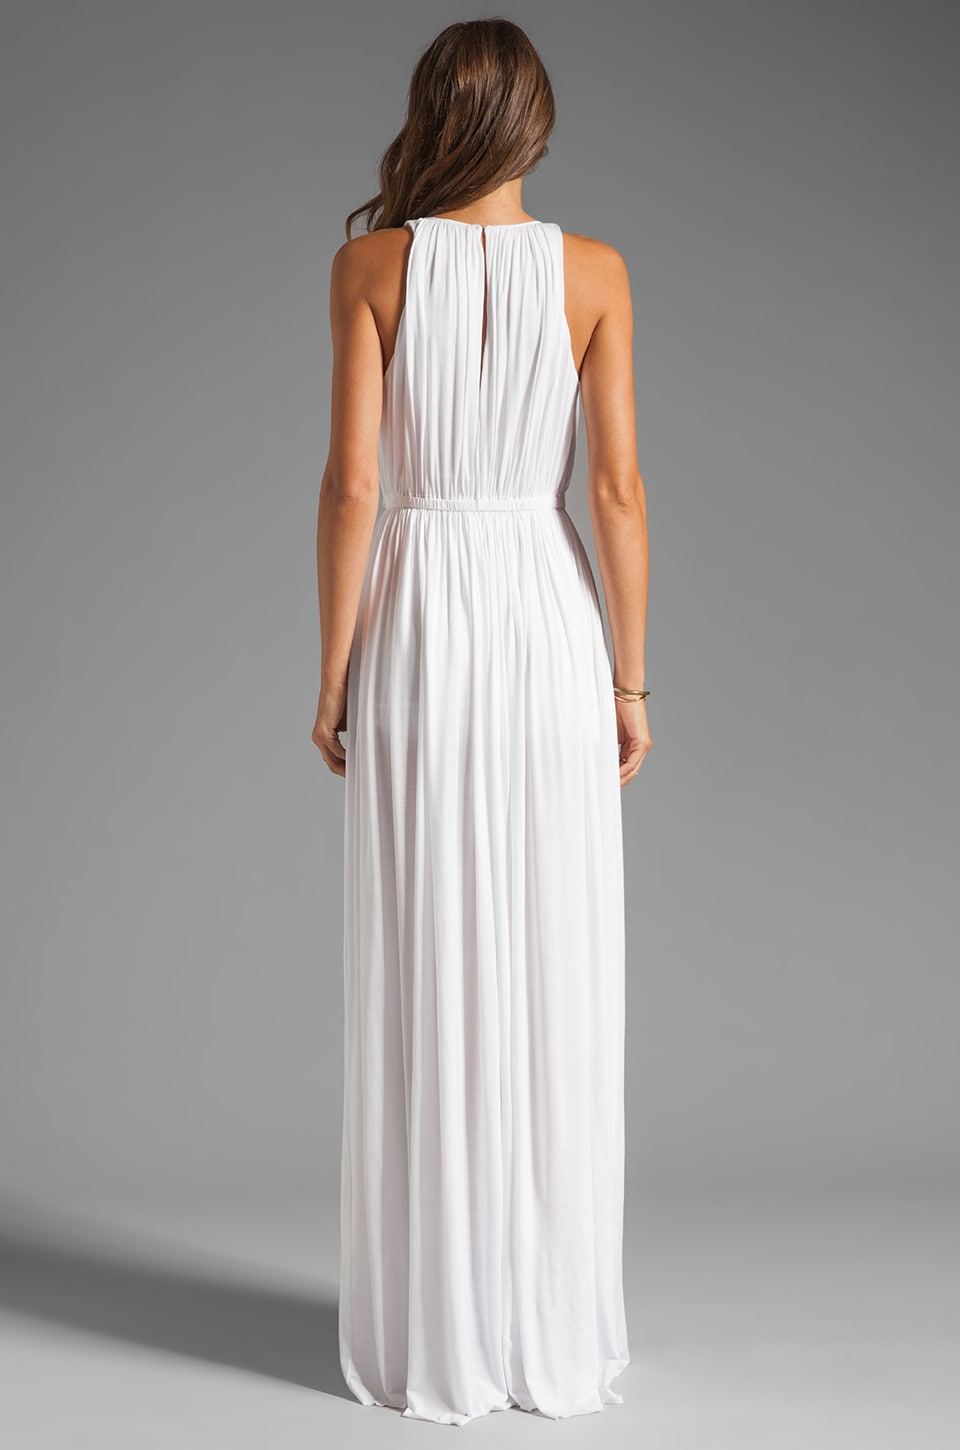 sen Flaviana Dress in White